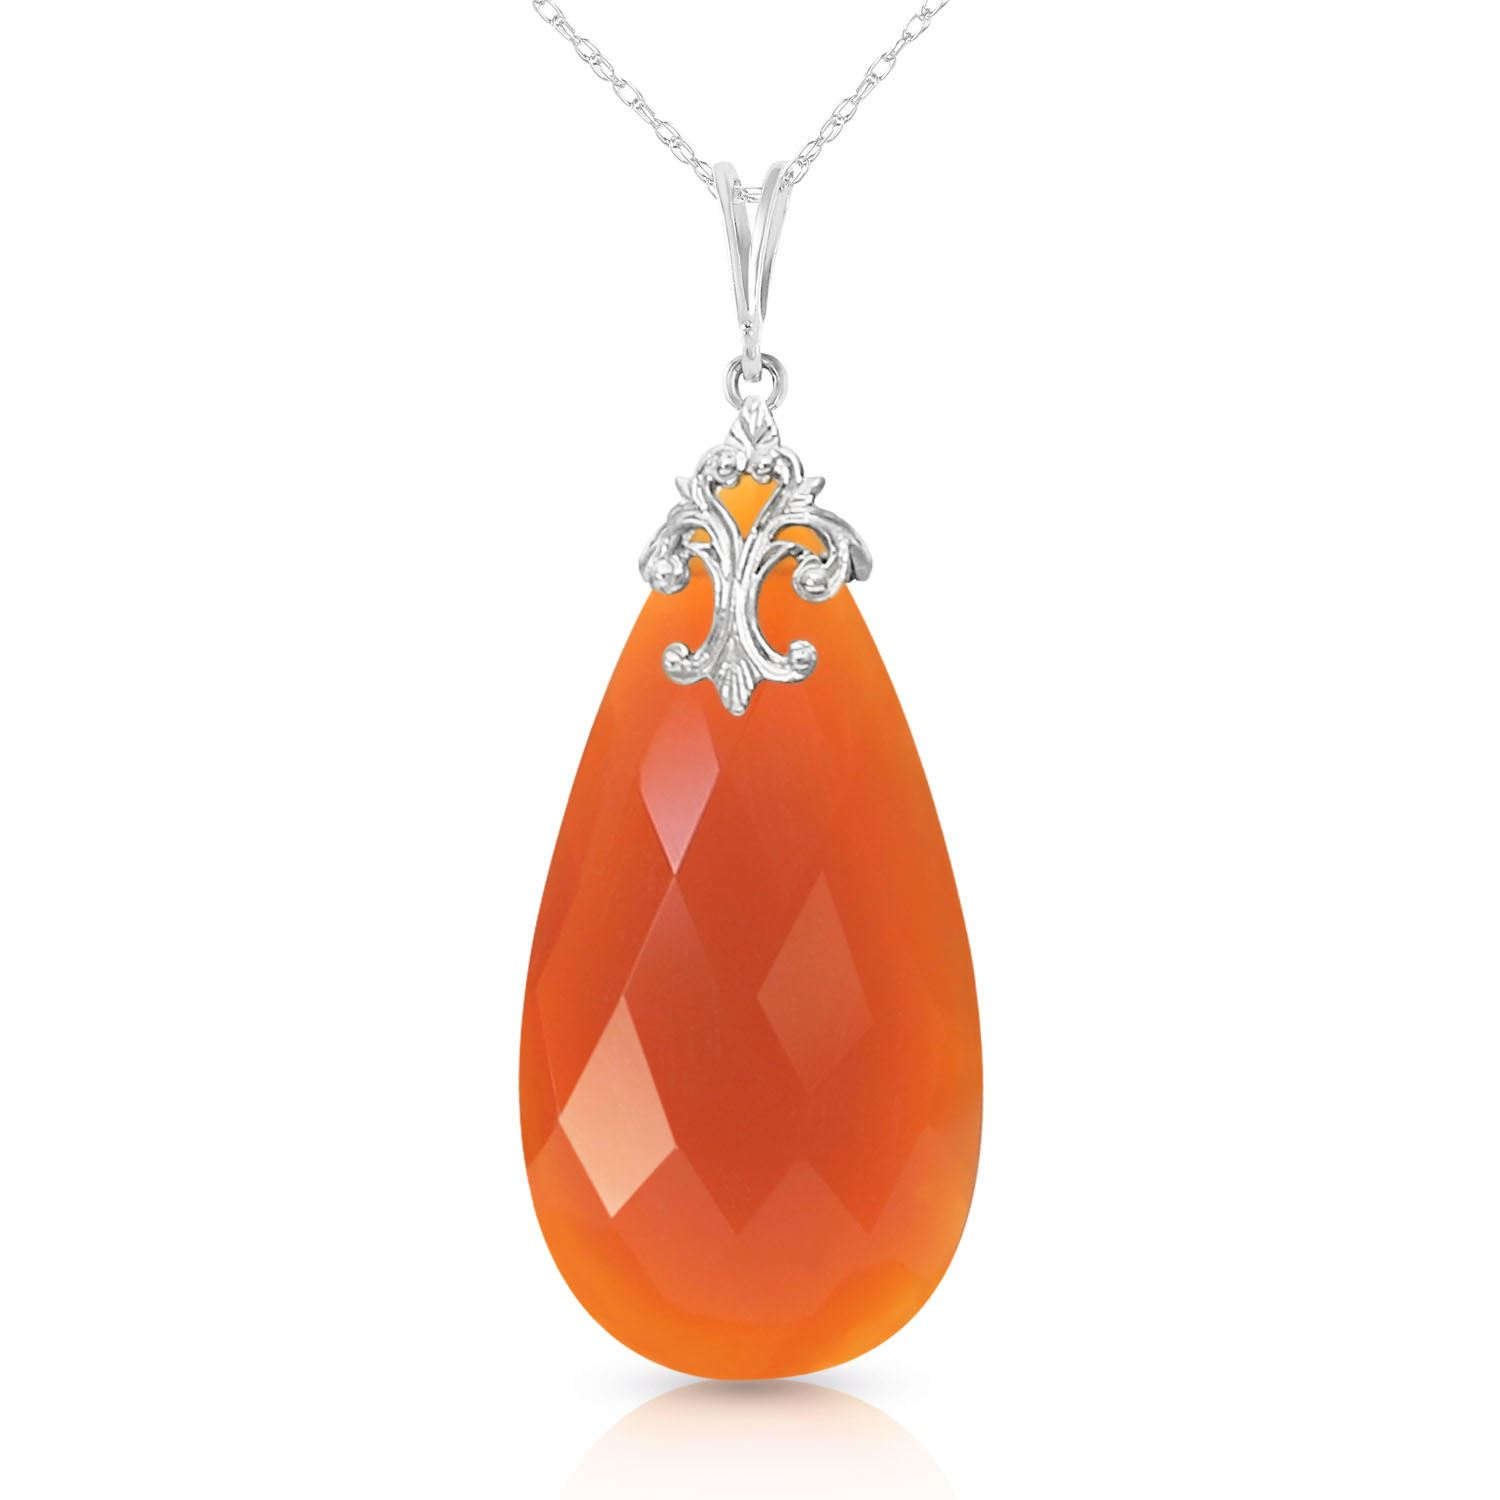 ALARRI 14K Solid White Gold Necklace with Briolette 31x16 mm Reddish Orange Chalcedony with 18 Inch Chain Length. by ALARRI